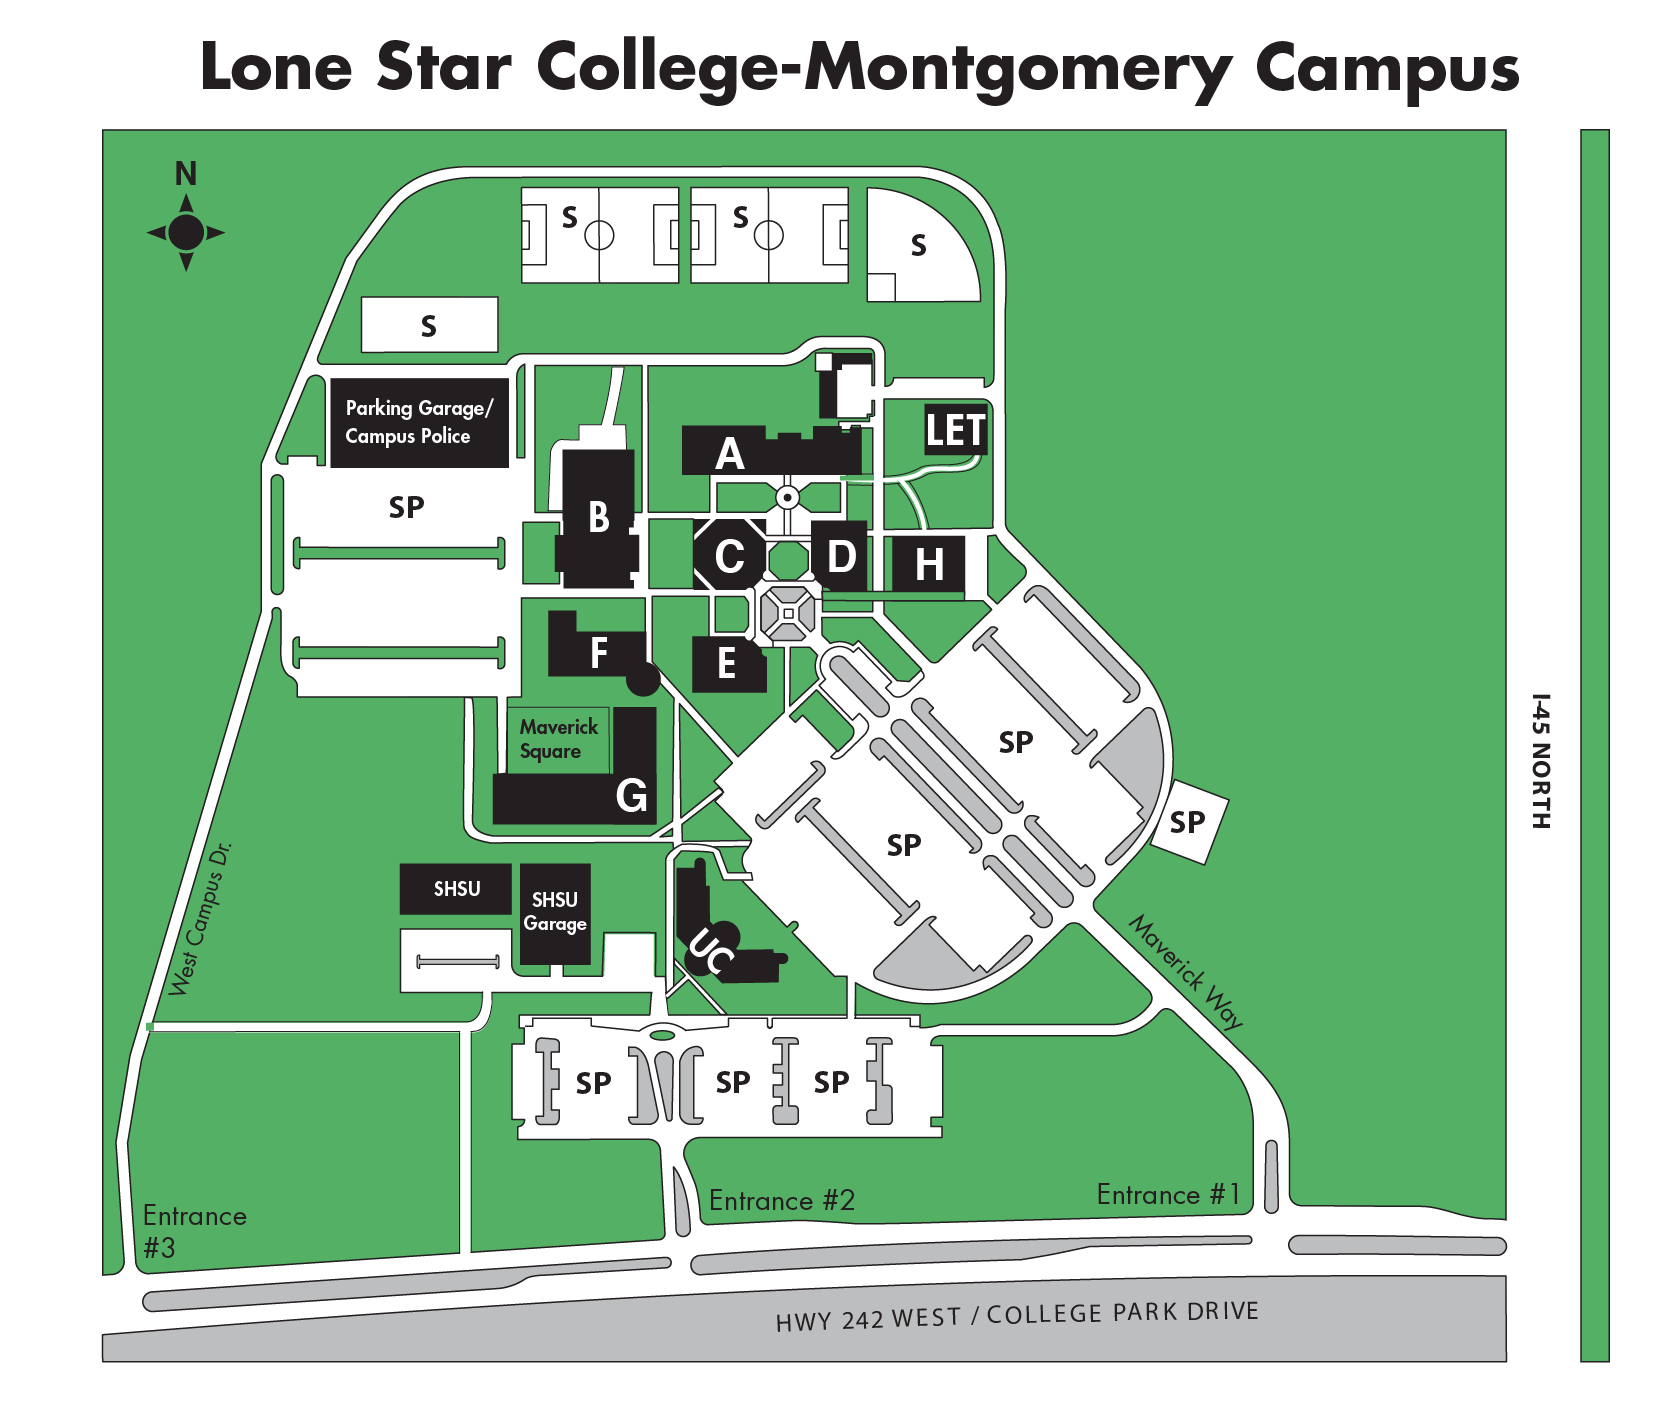 LSC-Montgomery campus map